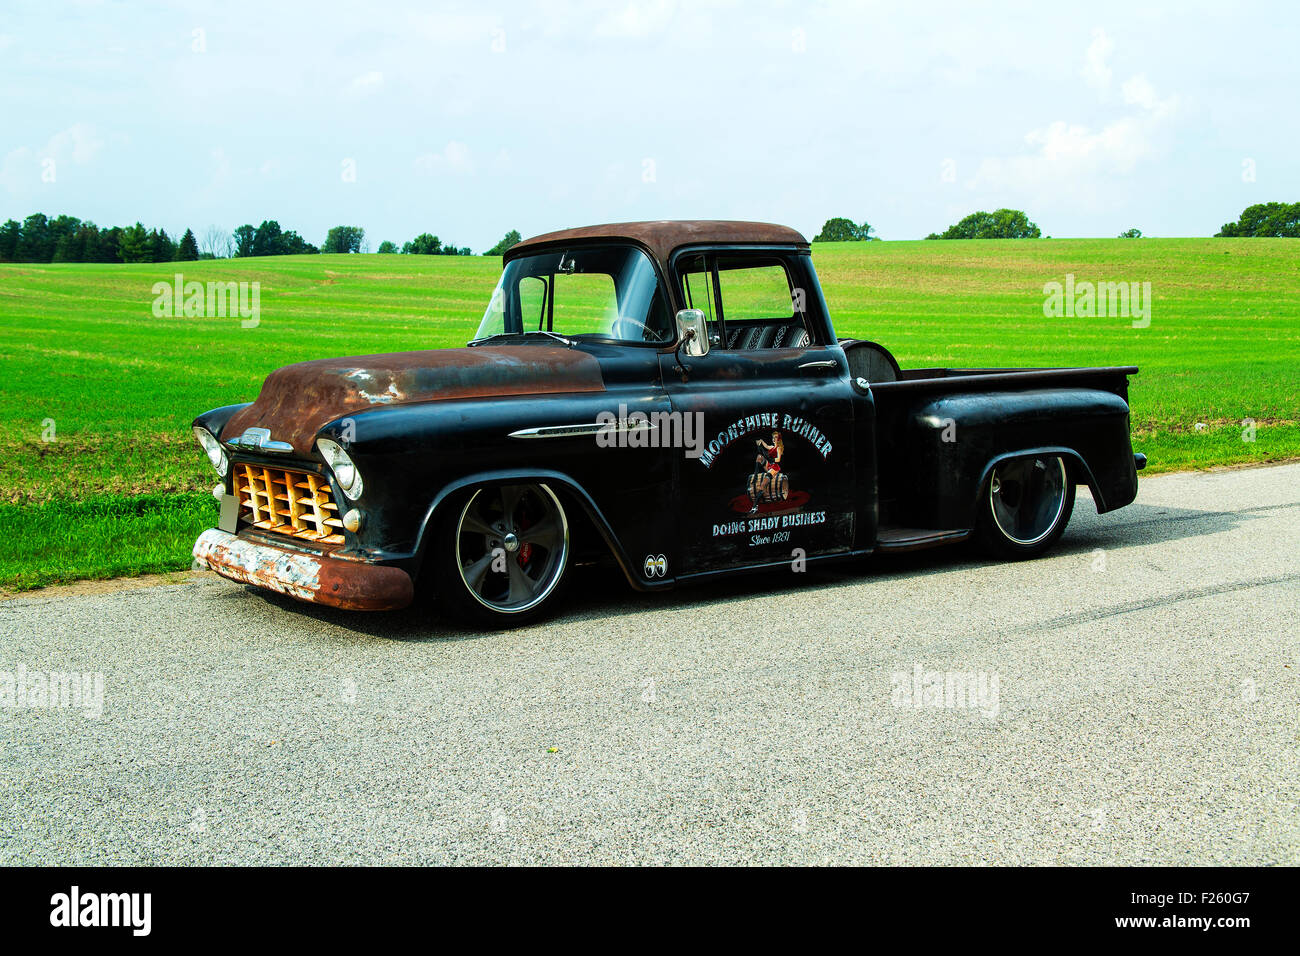 Custom Pickup Truck Stock Photos Images 1957 Chevy Rat Rod 1956 Chevrolet Image